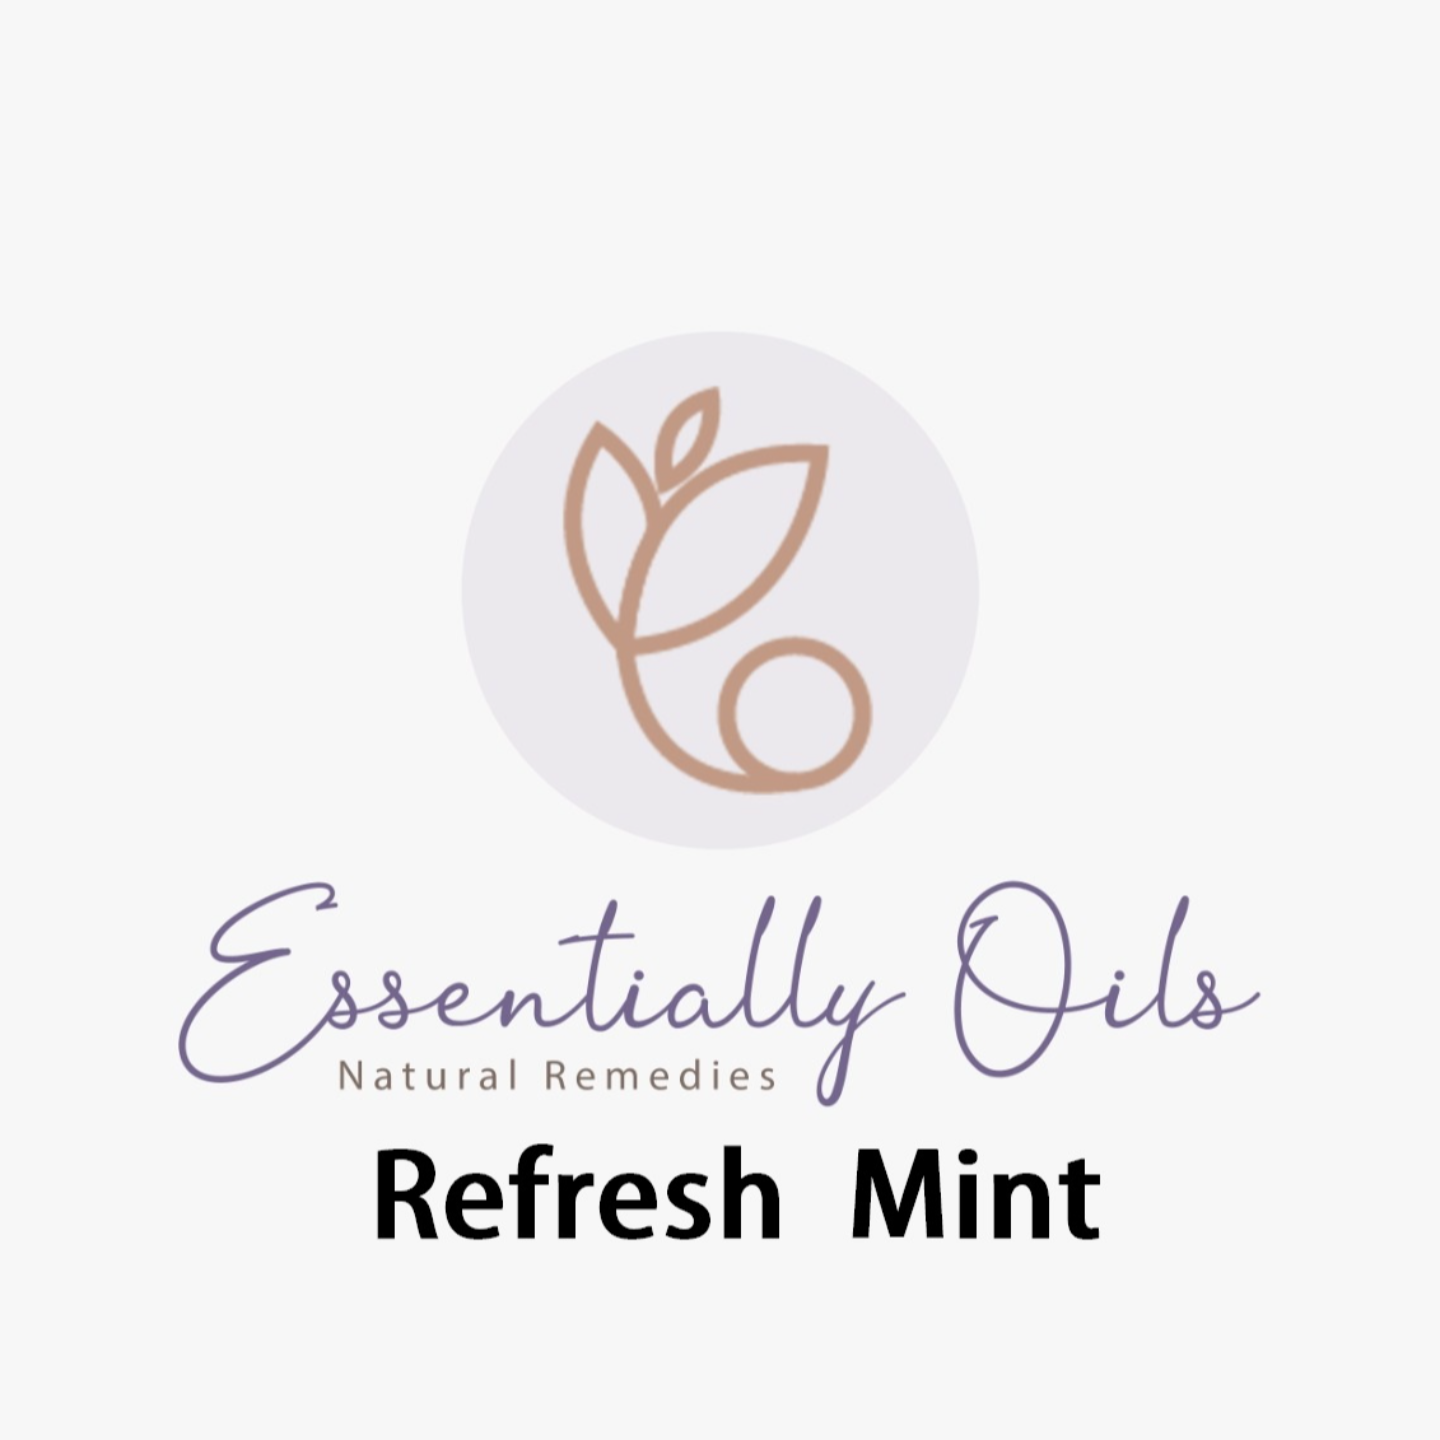 Refreshing Mint - Uplifting blend